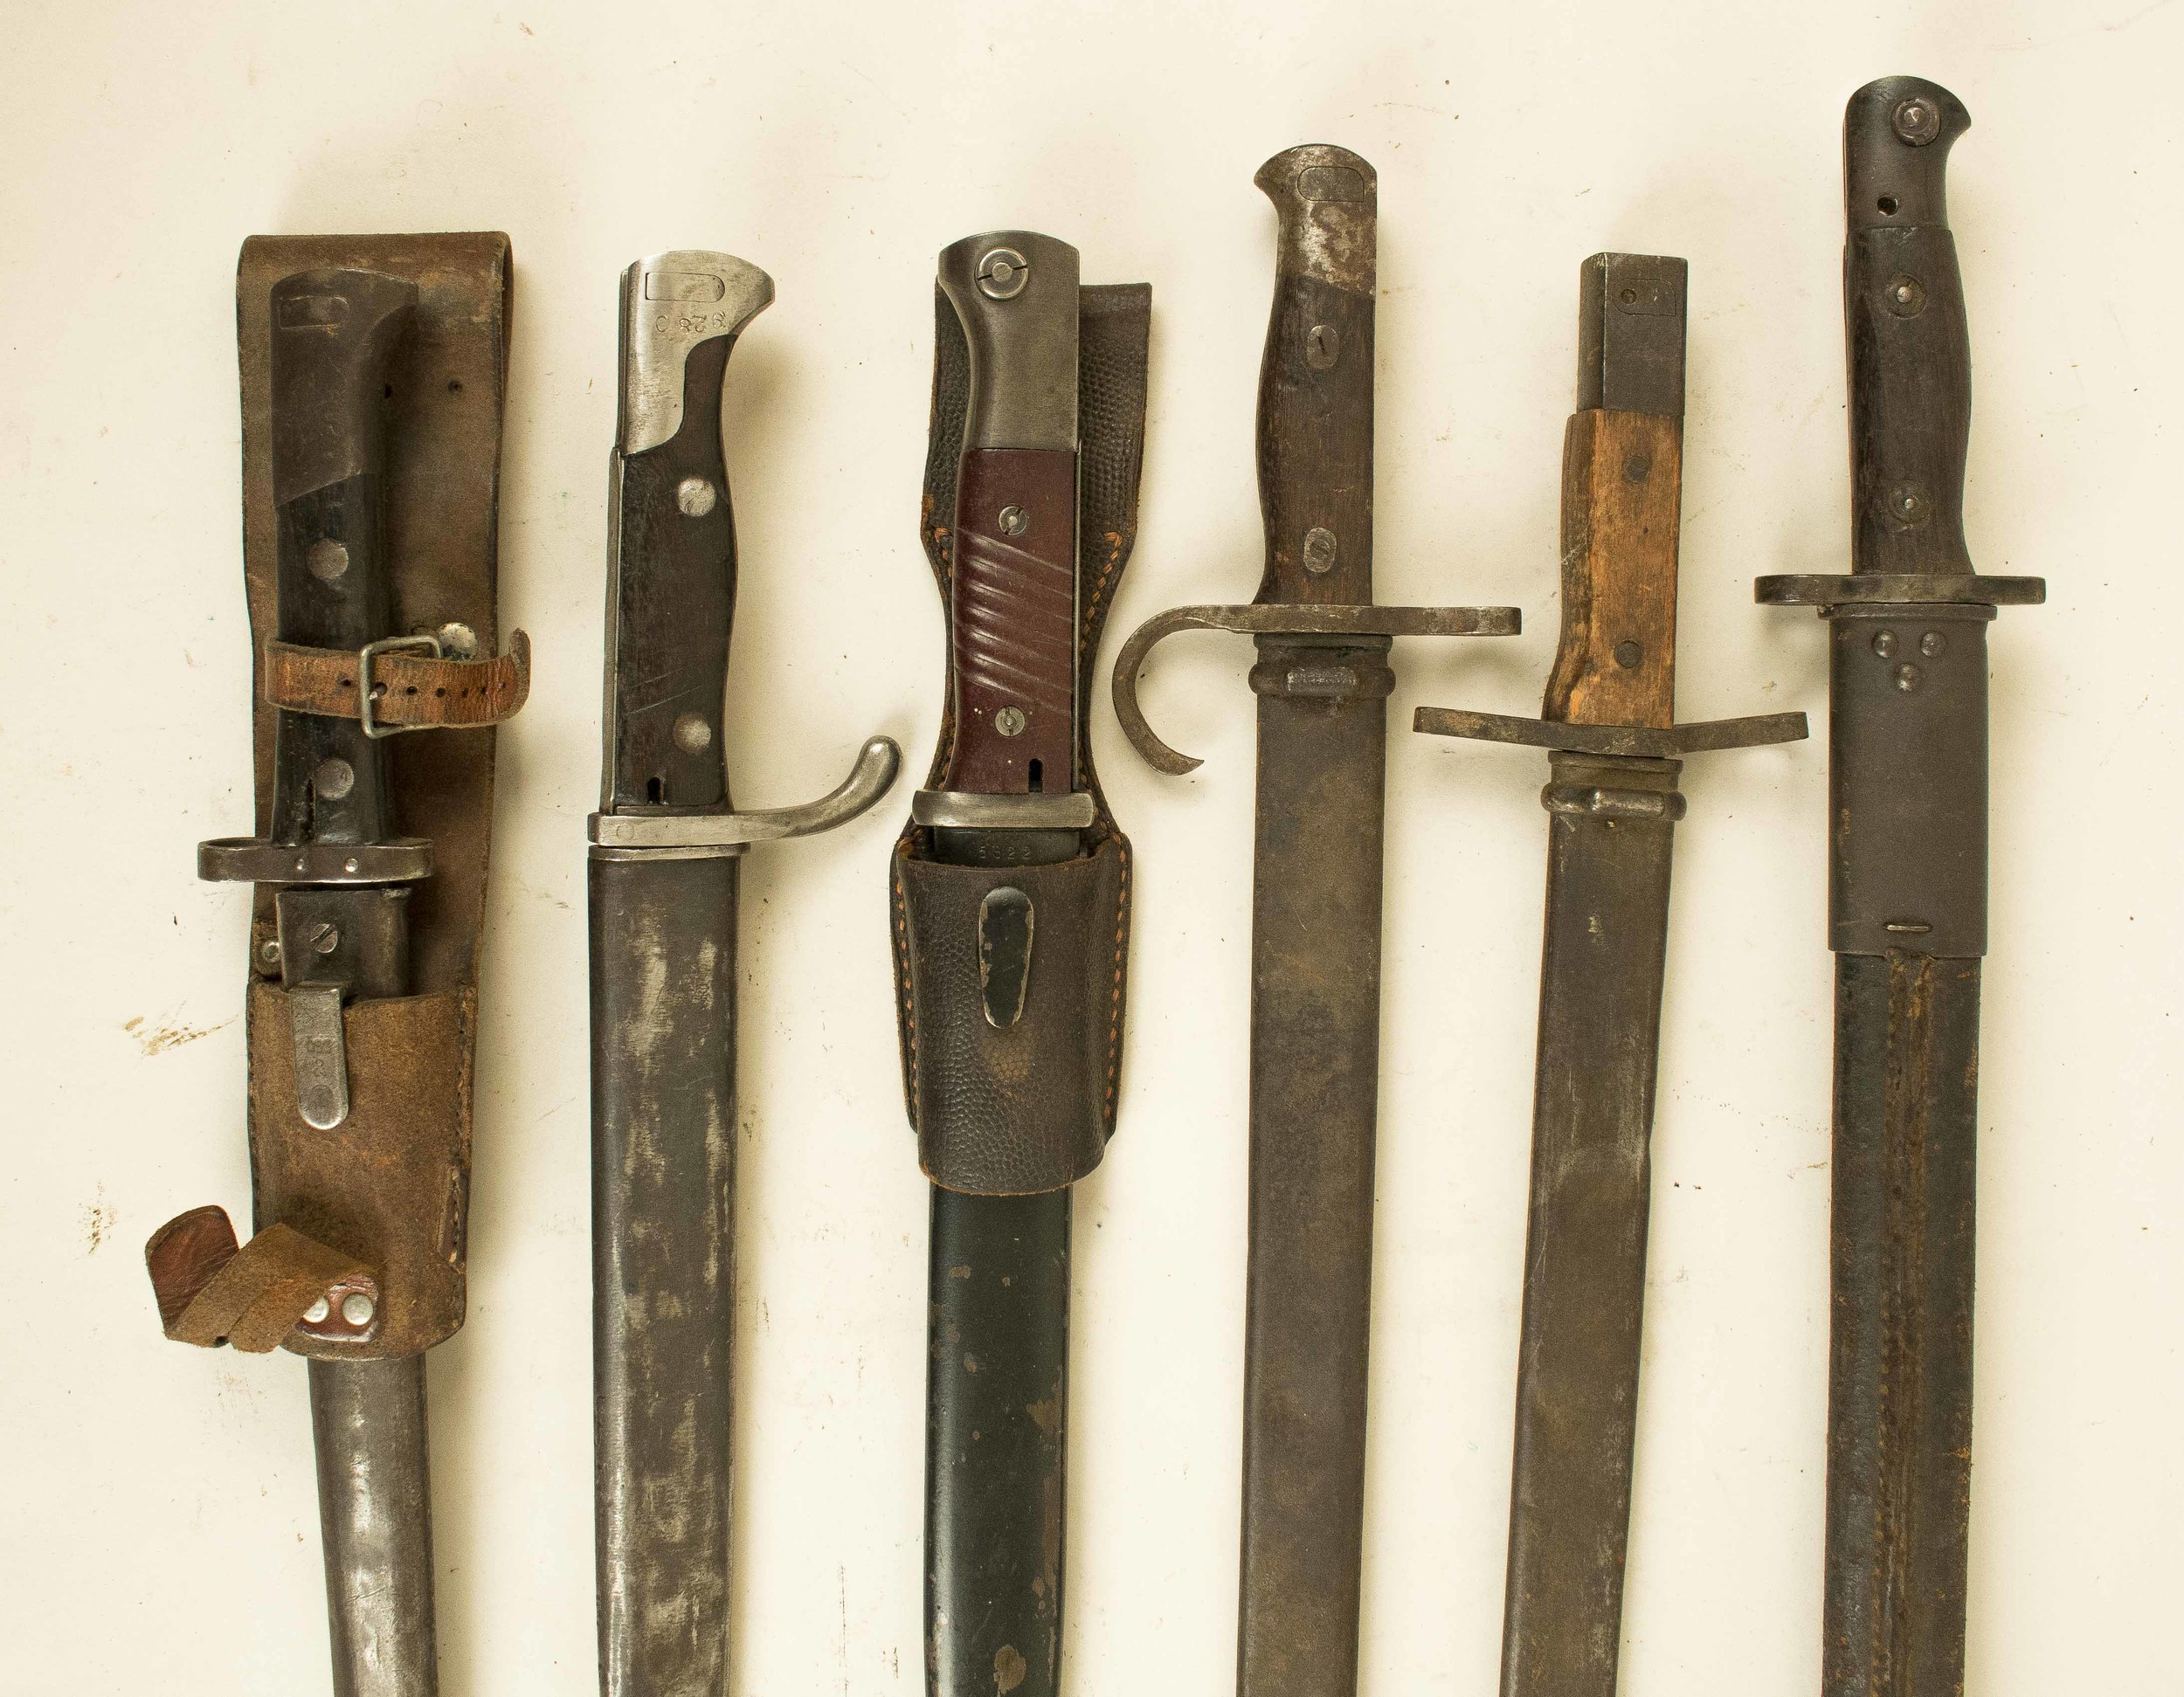 6 Bayonets of WWI and WWII: German, British, Japanese   Witherell's